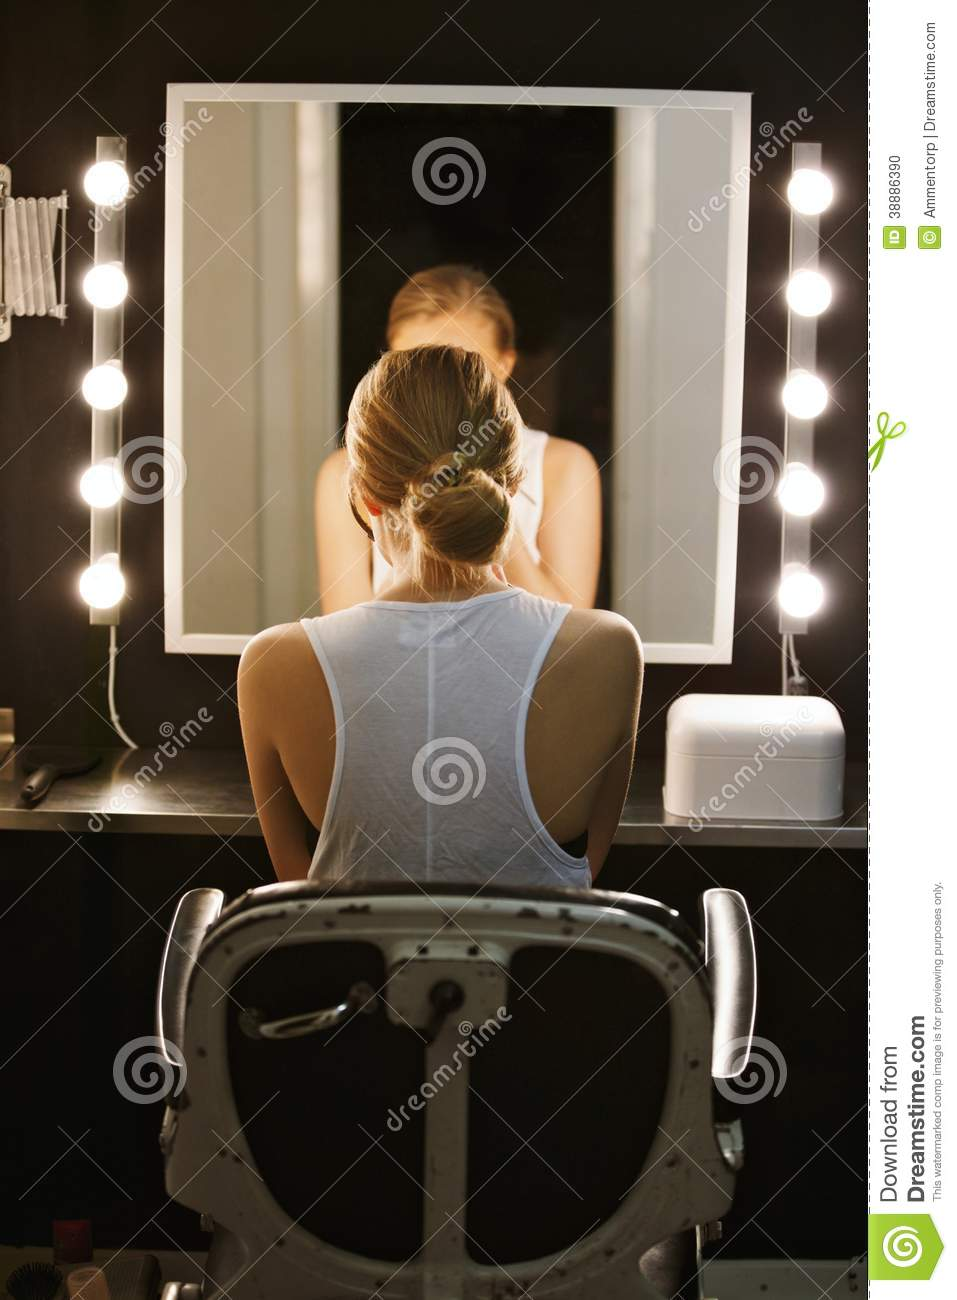 Professional Actress In Front Of Backstage Mirror Stock